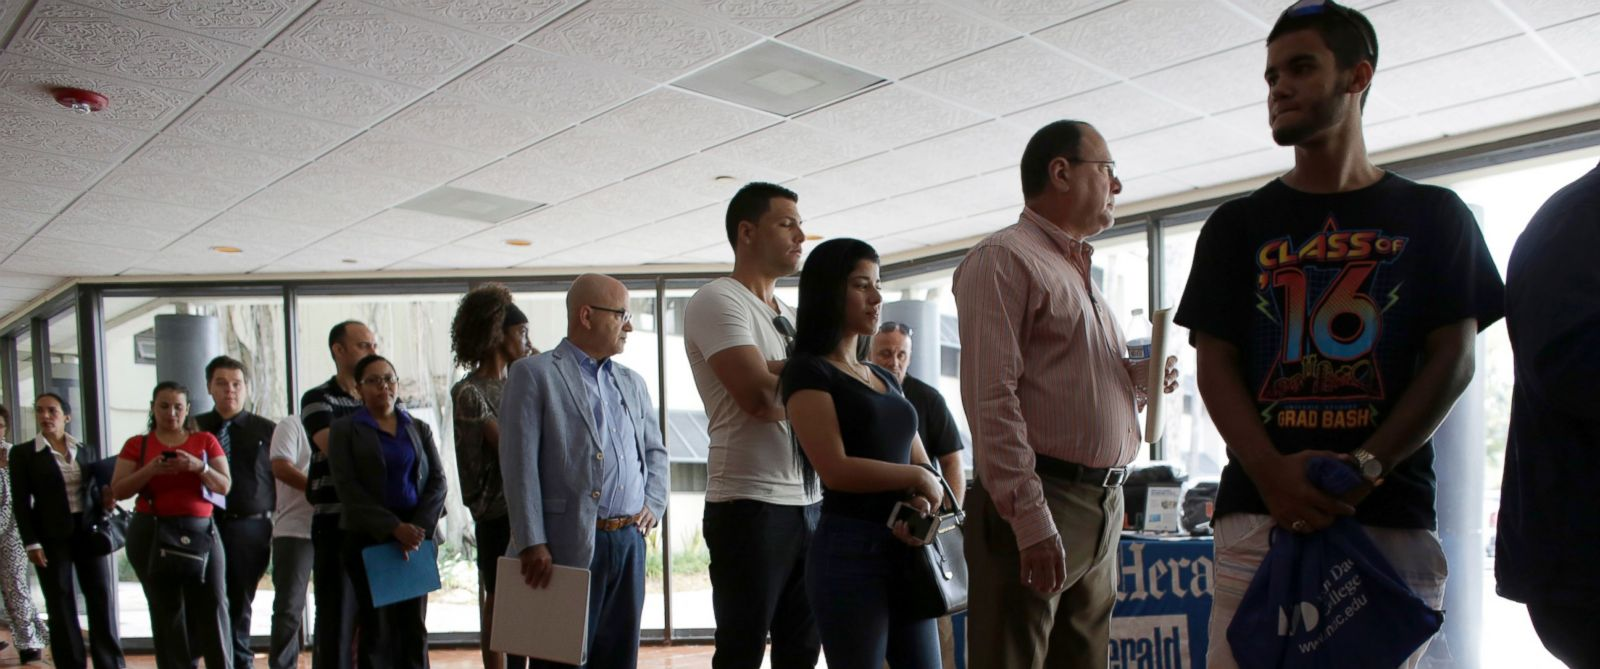 PHOTO: People stand in line to register for a job fair in Miami Lakes, Fla., July 19, 2016, file.